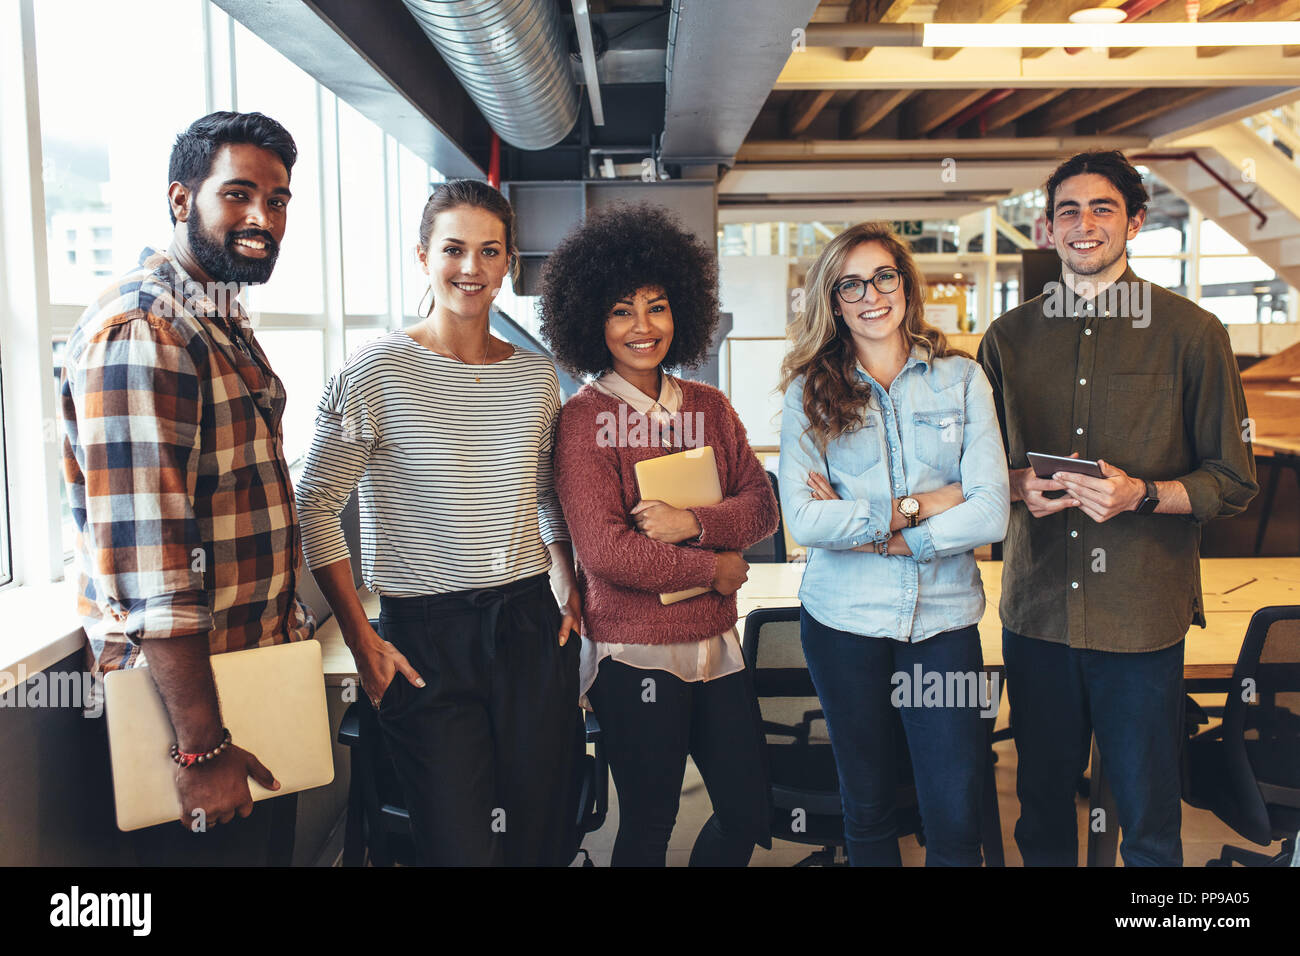 Happy coworkers standing in office holding laptops and tablets. Multiethnic group of business colleagues standing together in office. Stock Photo